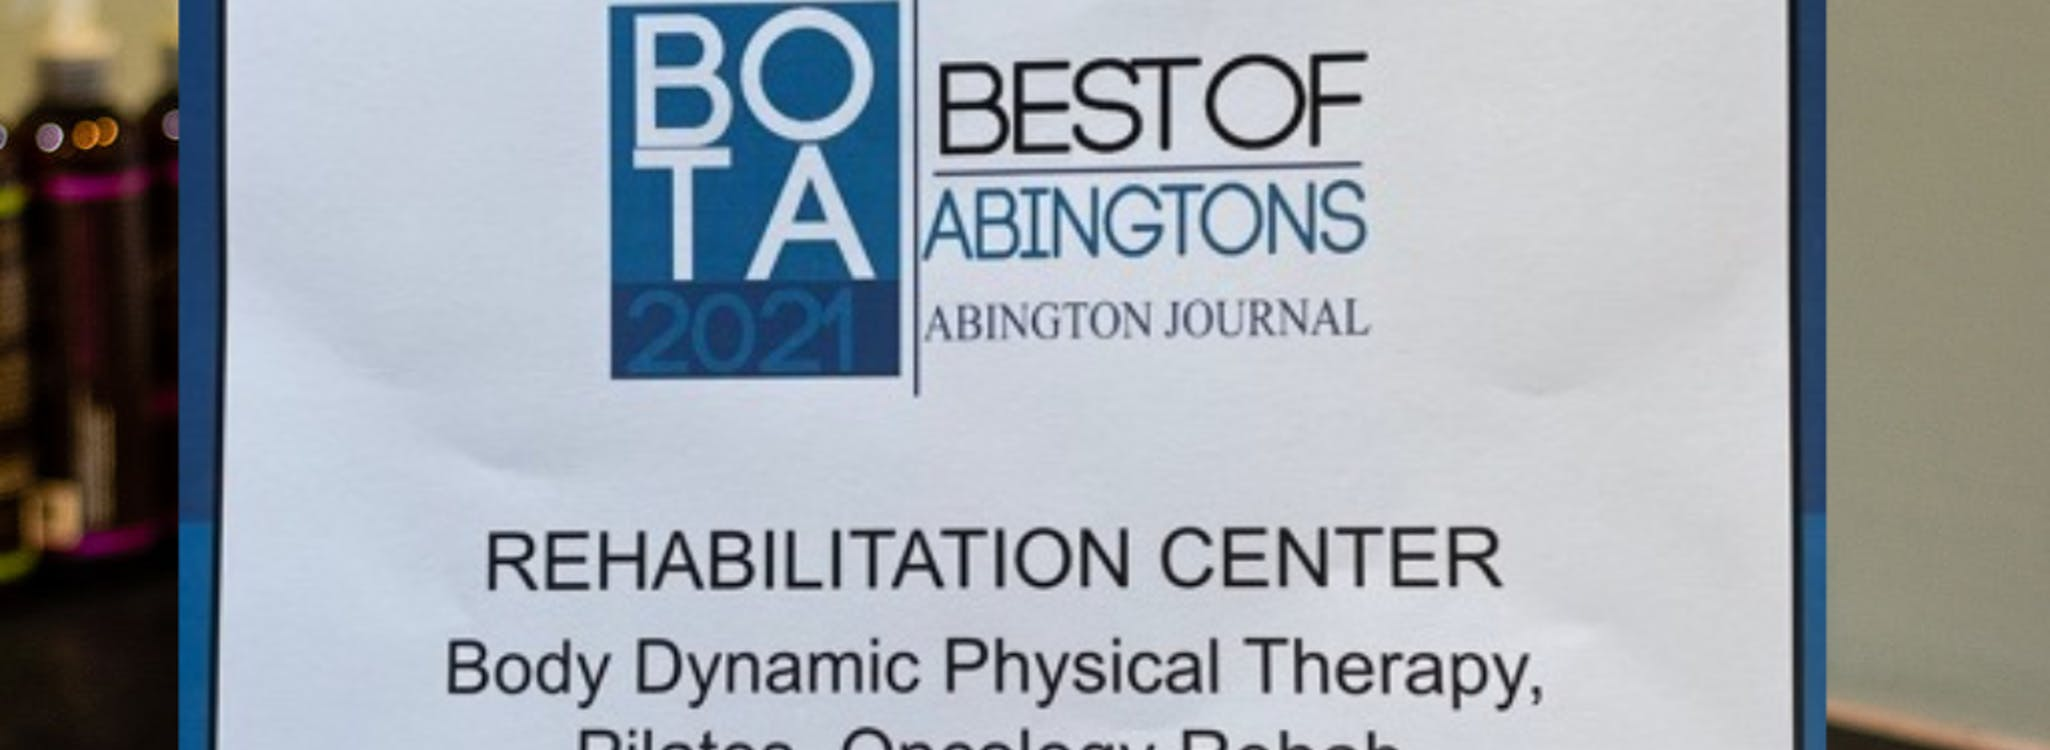 Body Dynamics Physical Therapy